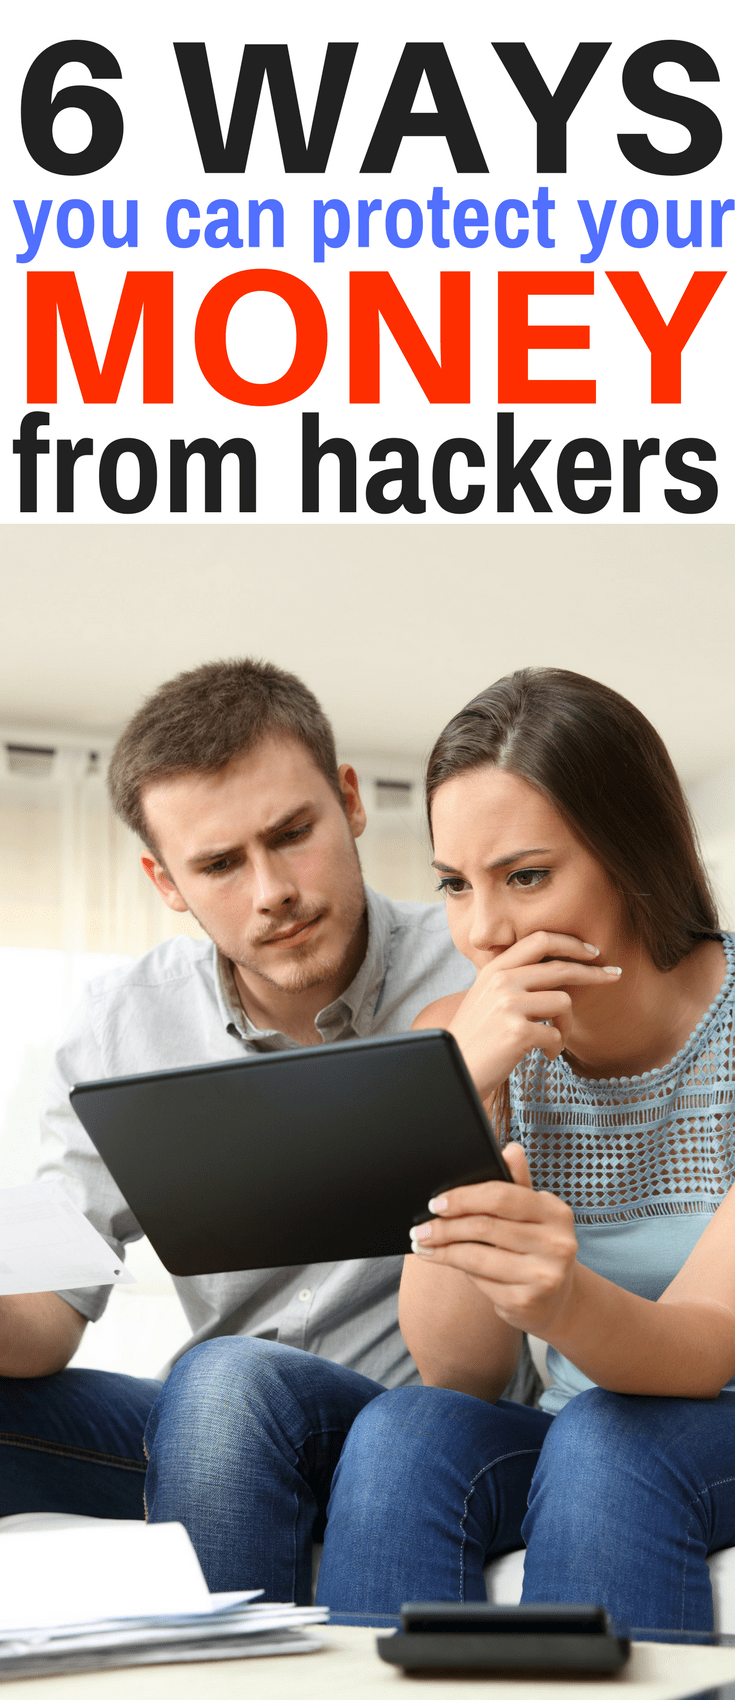 6 Ways You Can Protect Your Money From Hackers